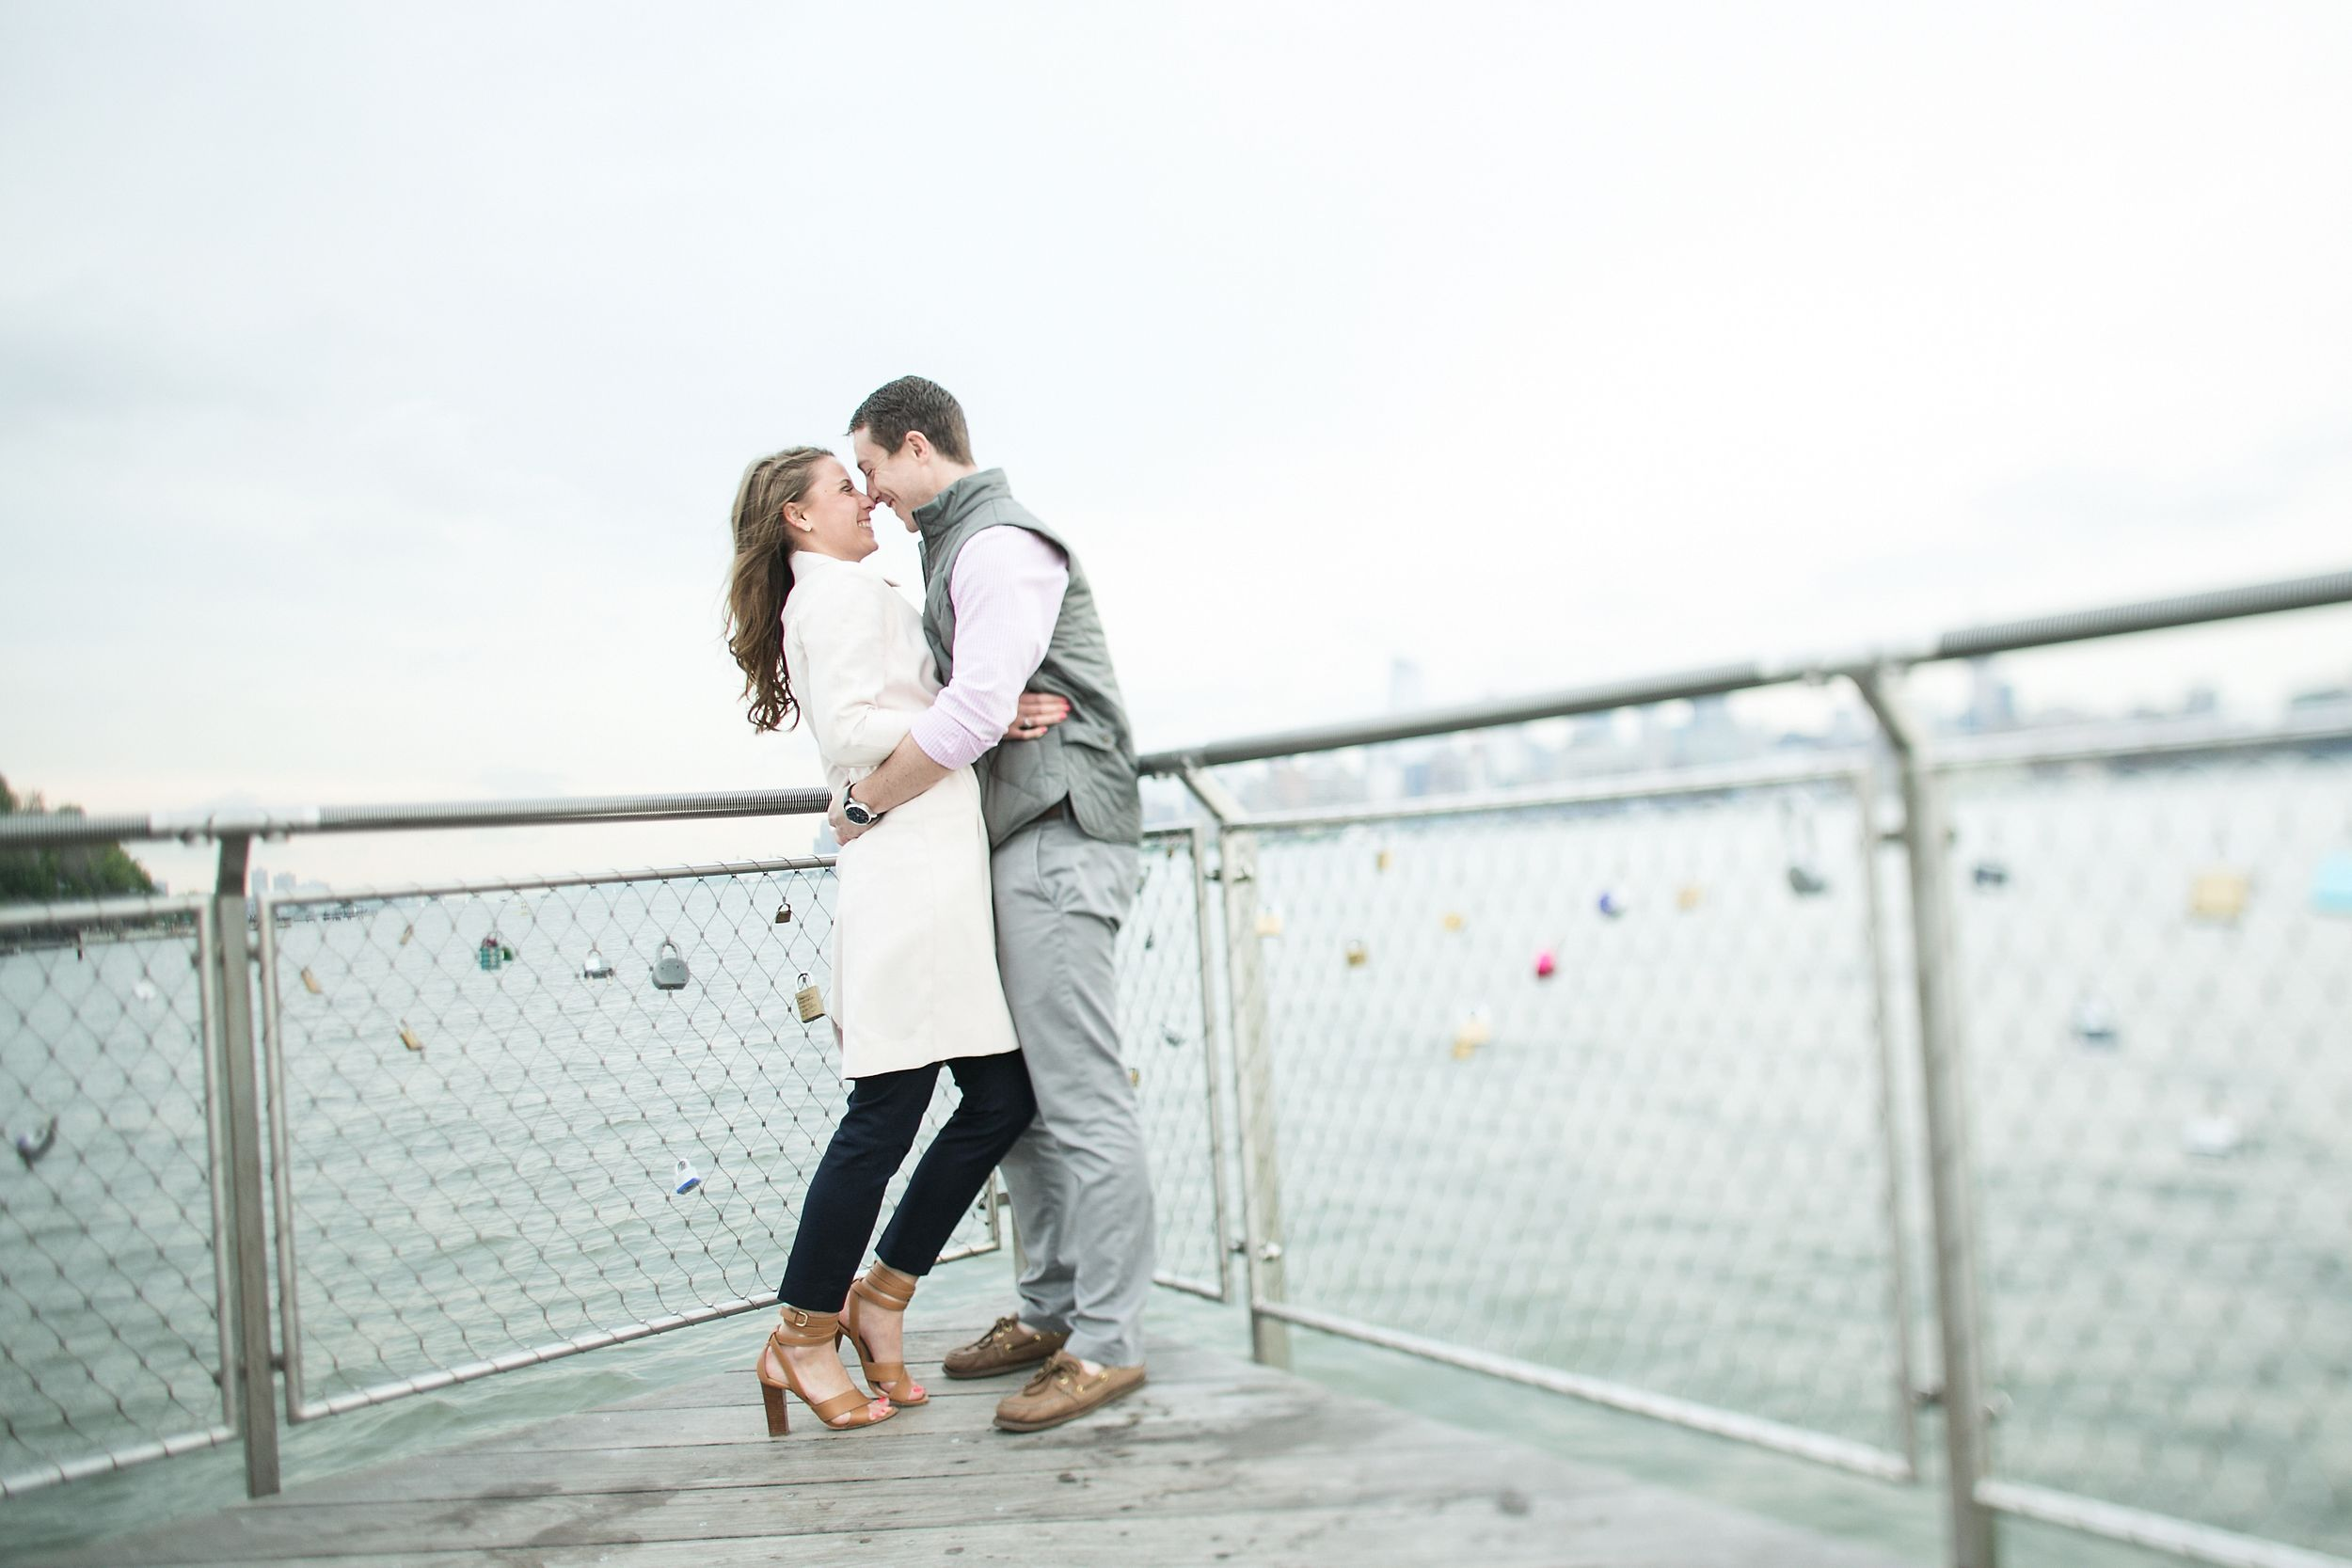 engagement wedding weddings events event photography photographer new york new jersey connecticut pier C park hoboken